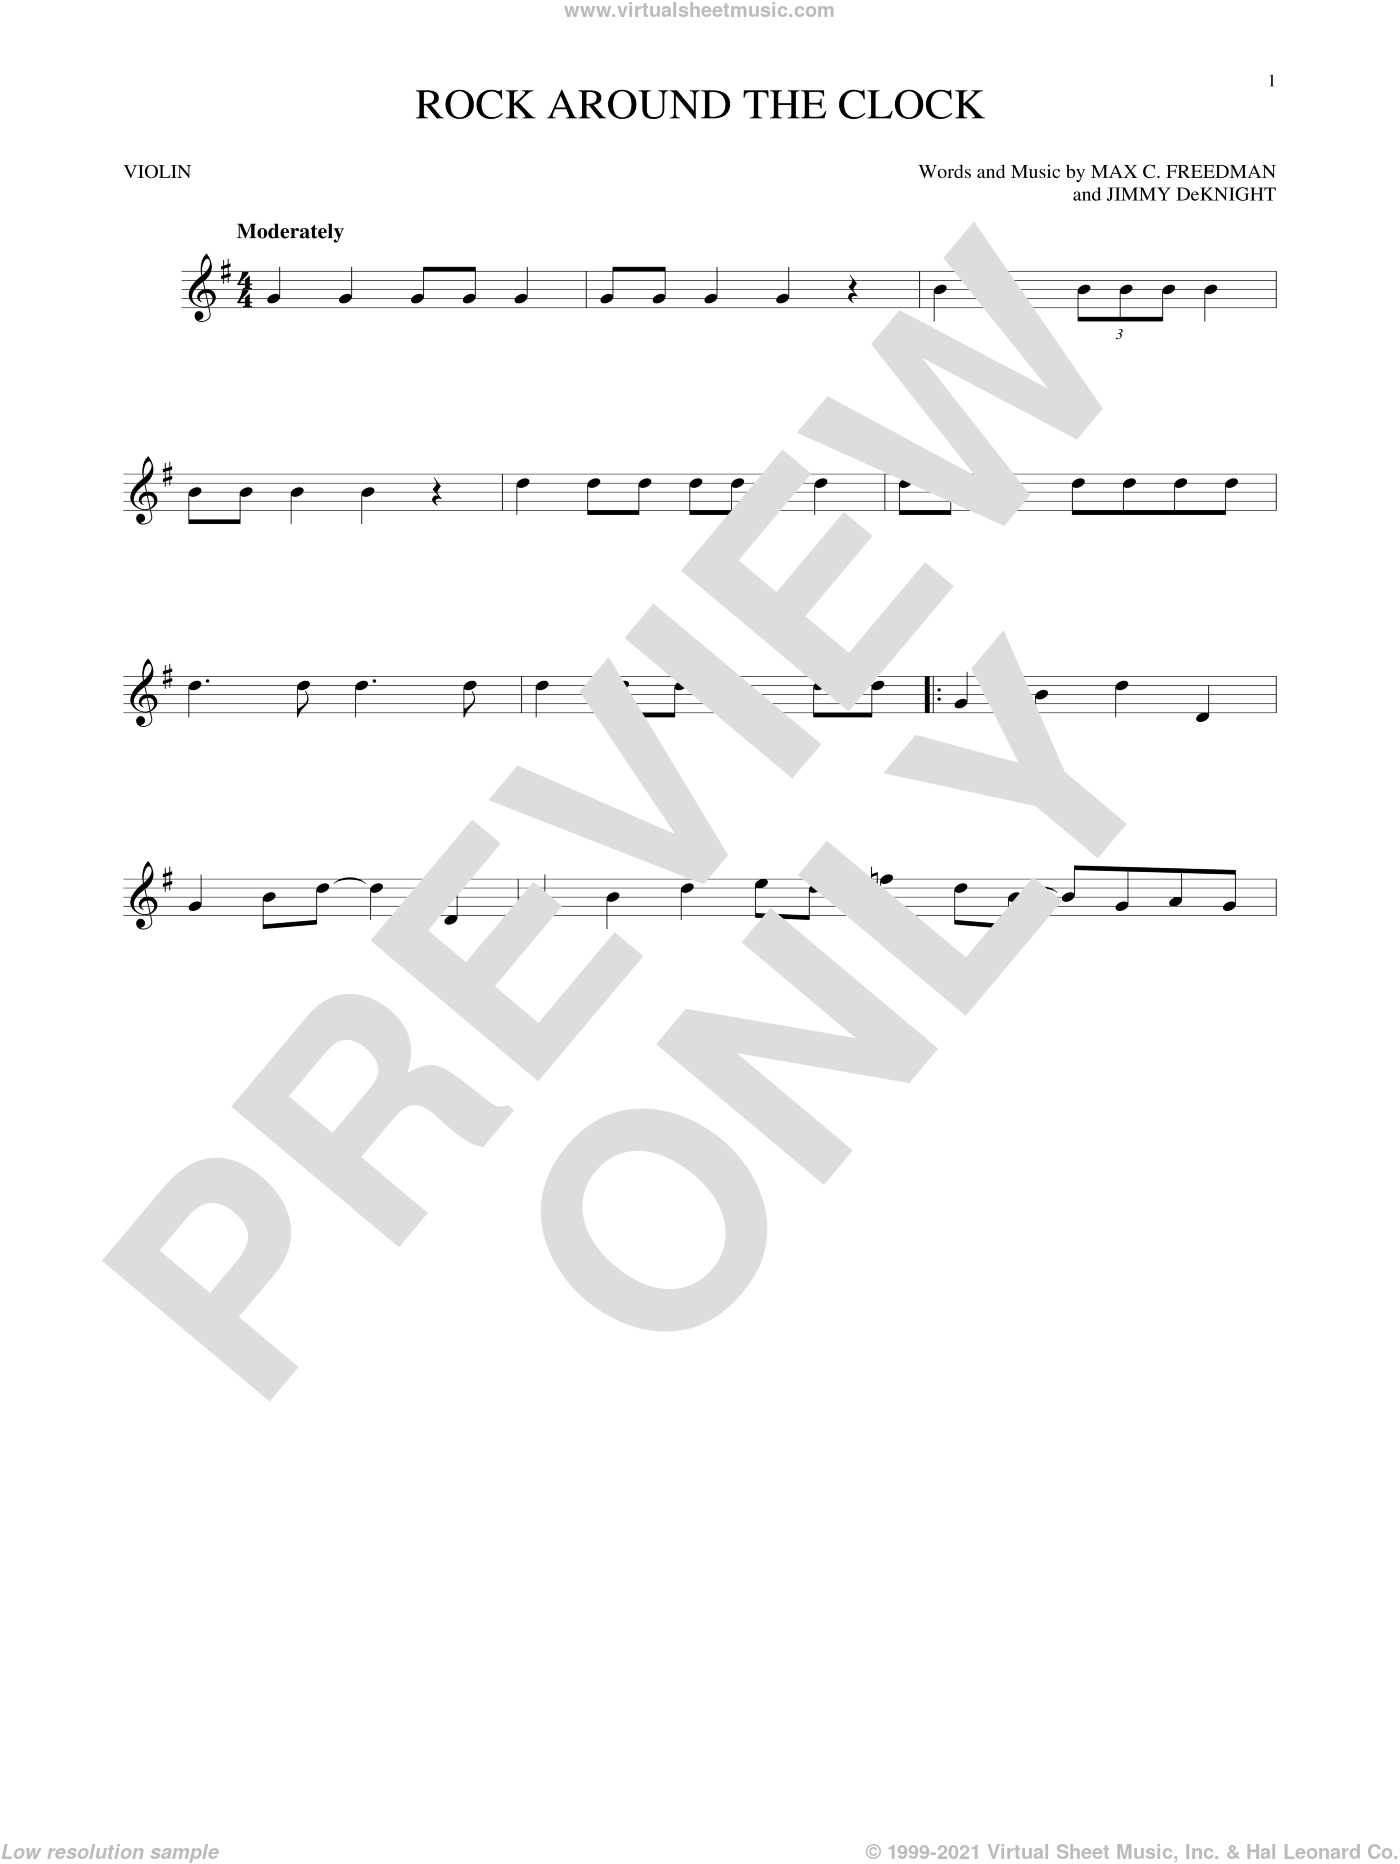 Rock Around The Clock sheet music for violin solo by Bill Haley & His Comets, Jimmy DeKnight and Max C. Freedman, intermediate